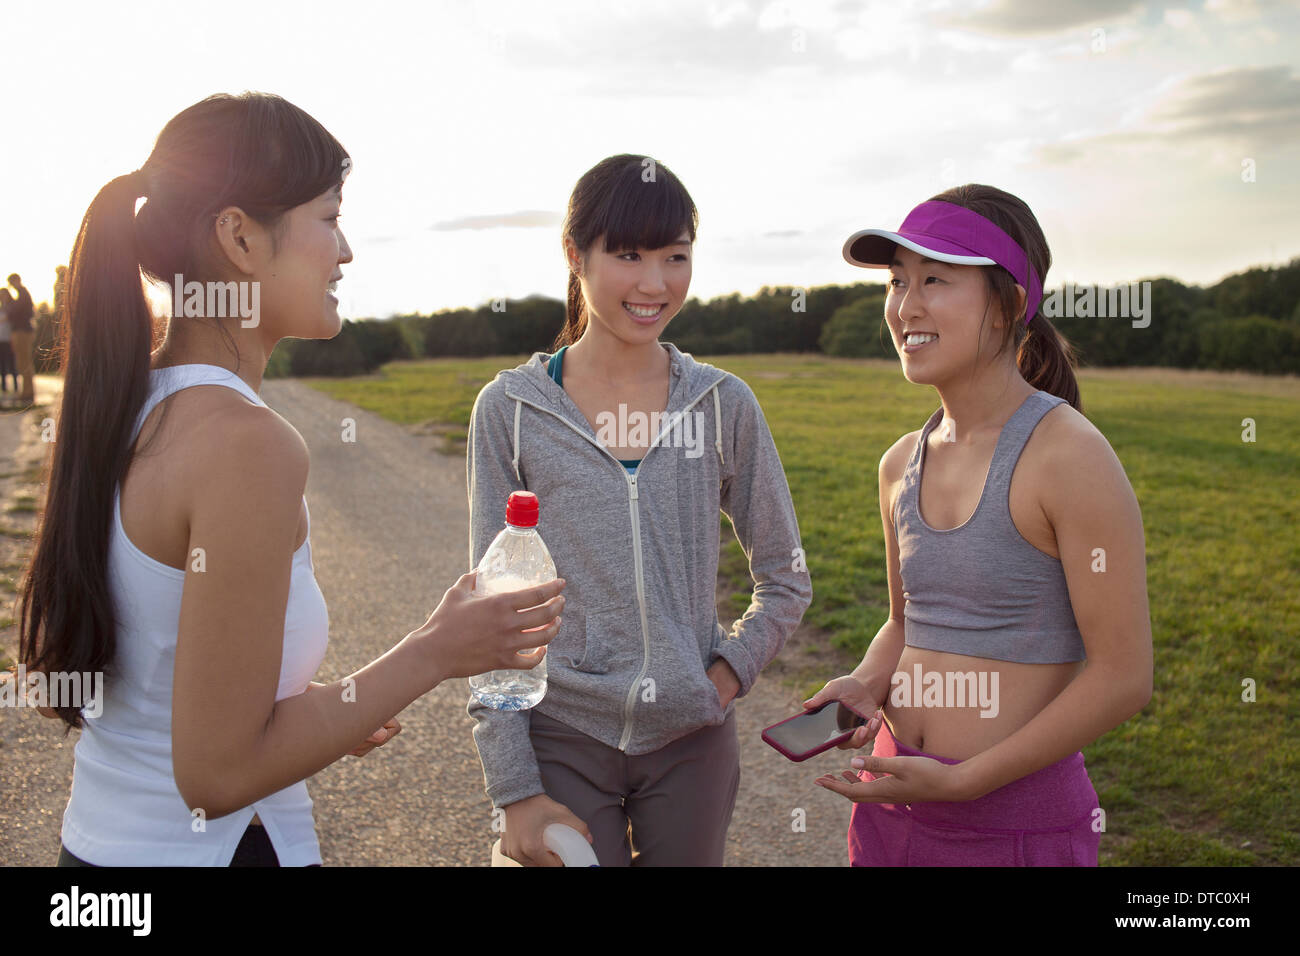 Three young female runners chatting after run Stock Photo